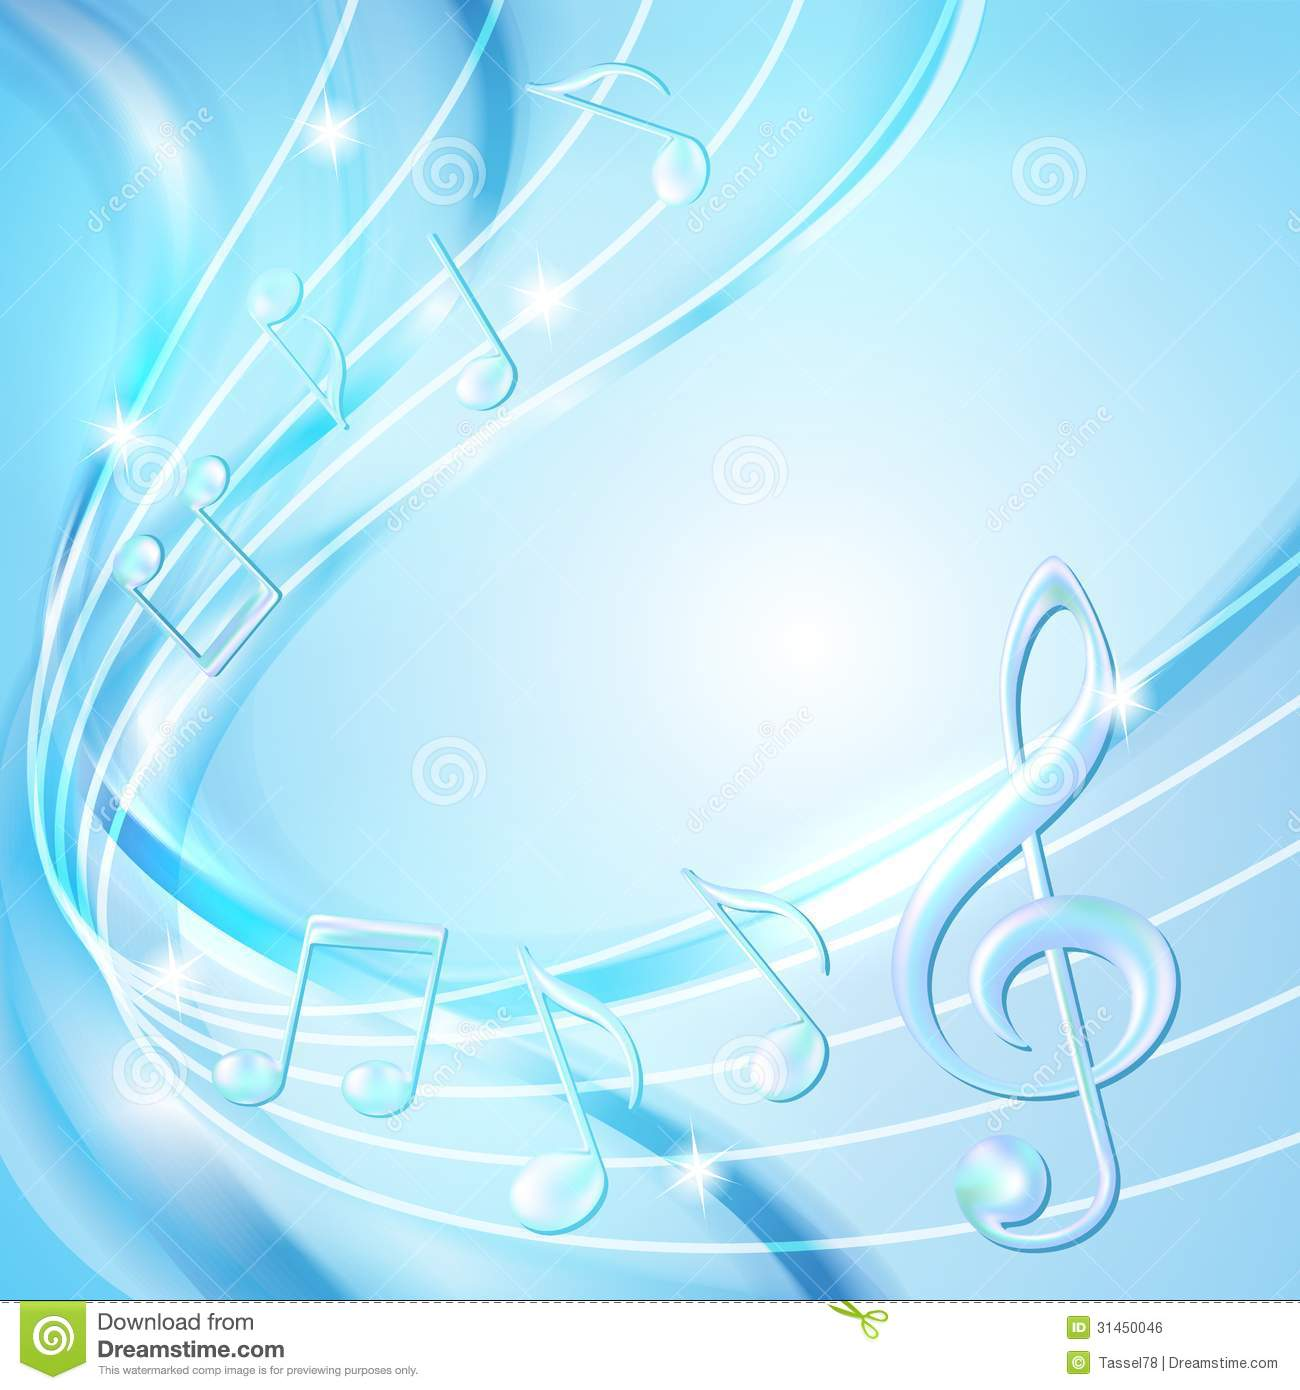 Musical notes staff background on white vector by tassel78 image - Abstract Background Blue Illustration Music Notes